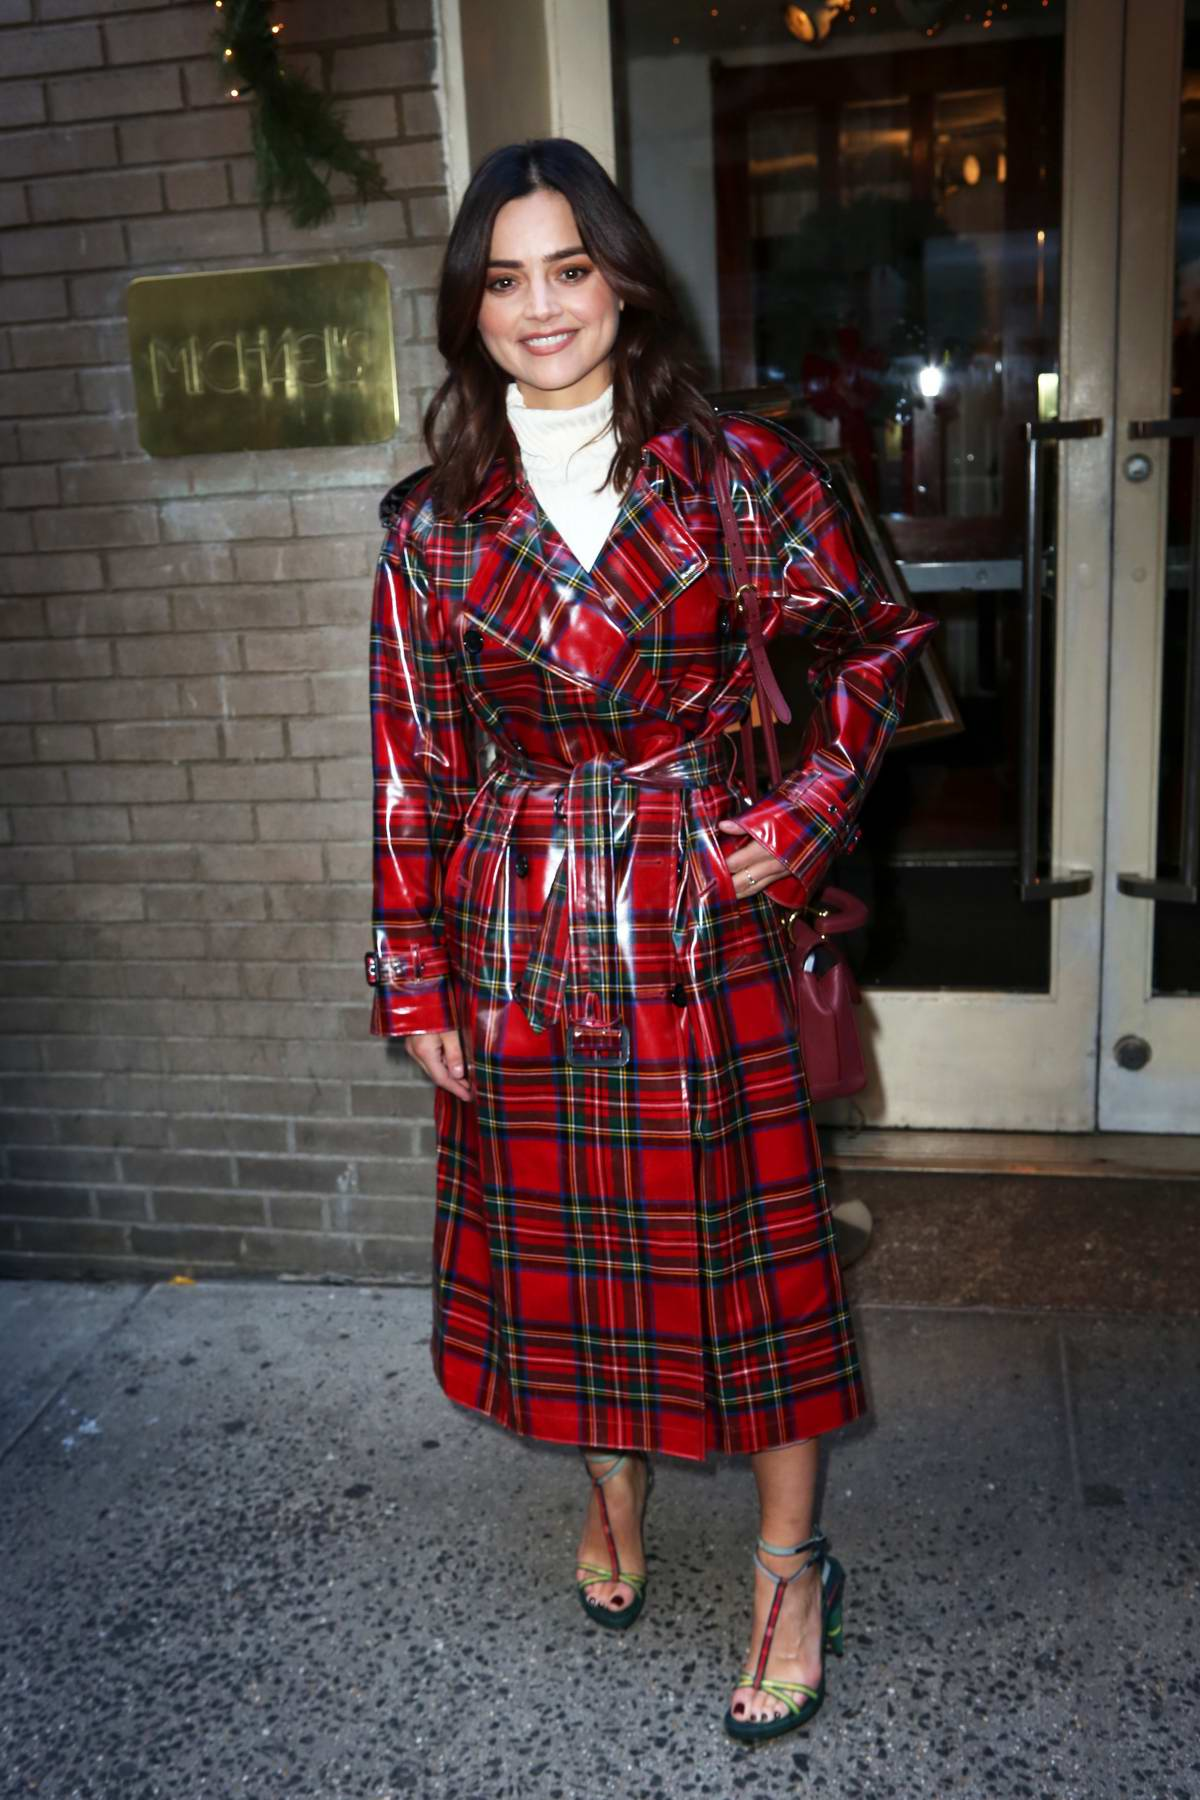 Jenna Coleman at the Cosmo's 100 Most Powerful Women Luncheon in New York City